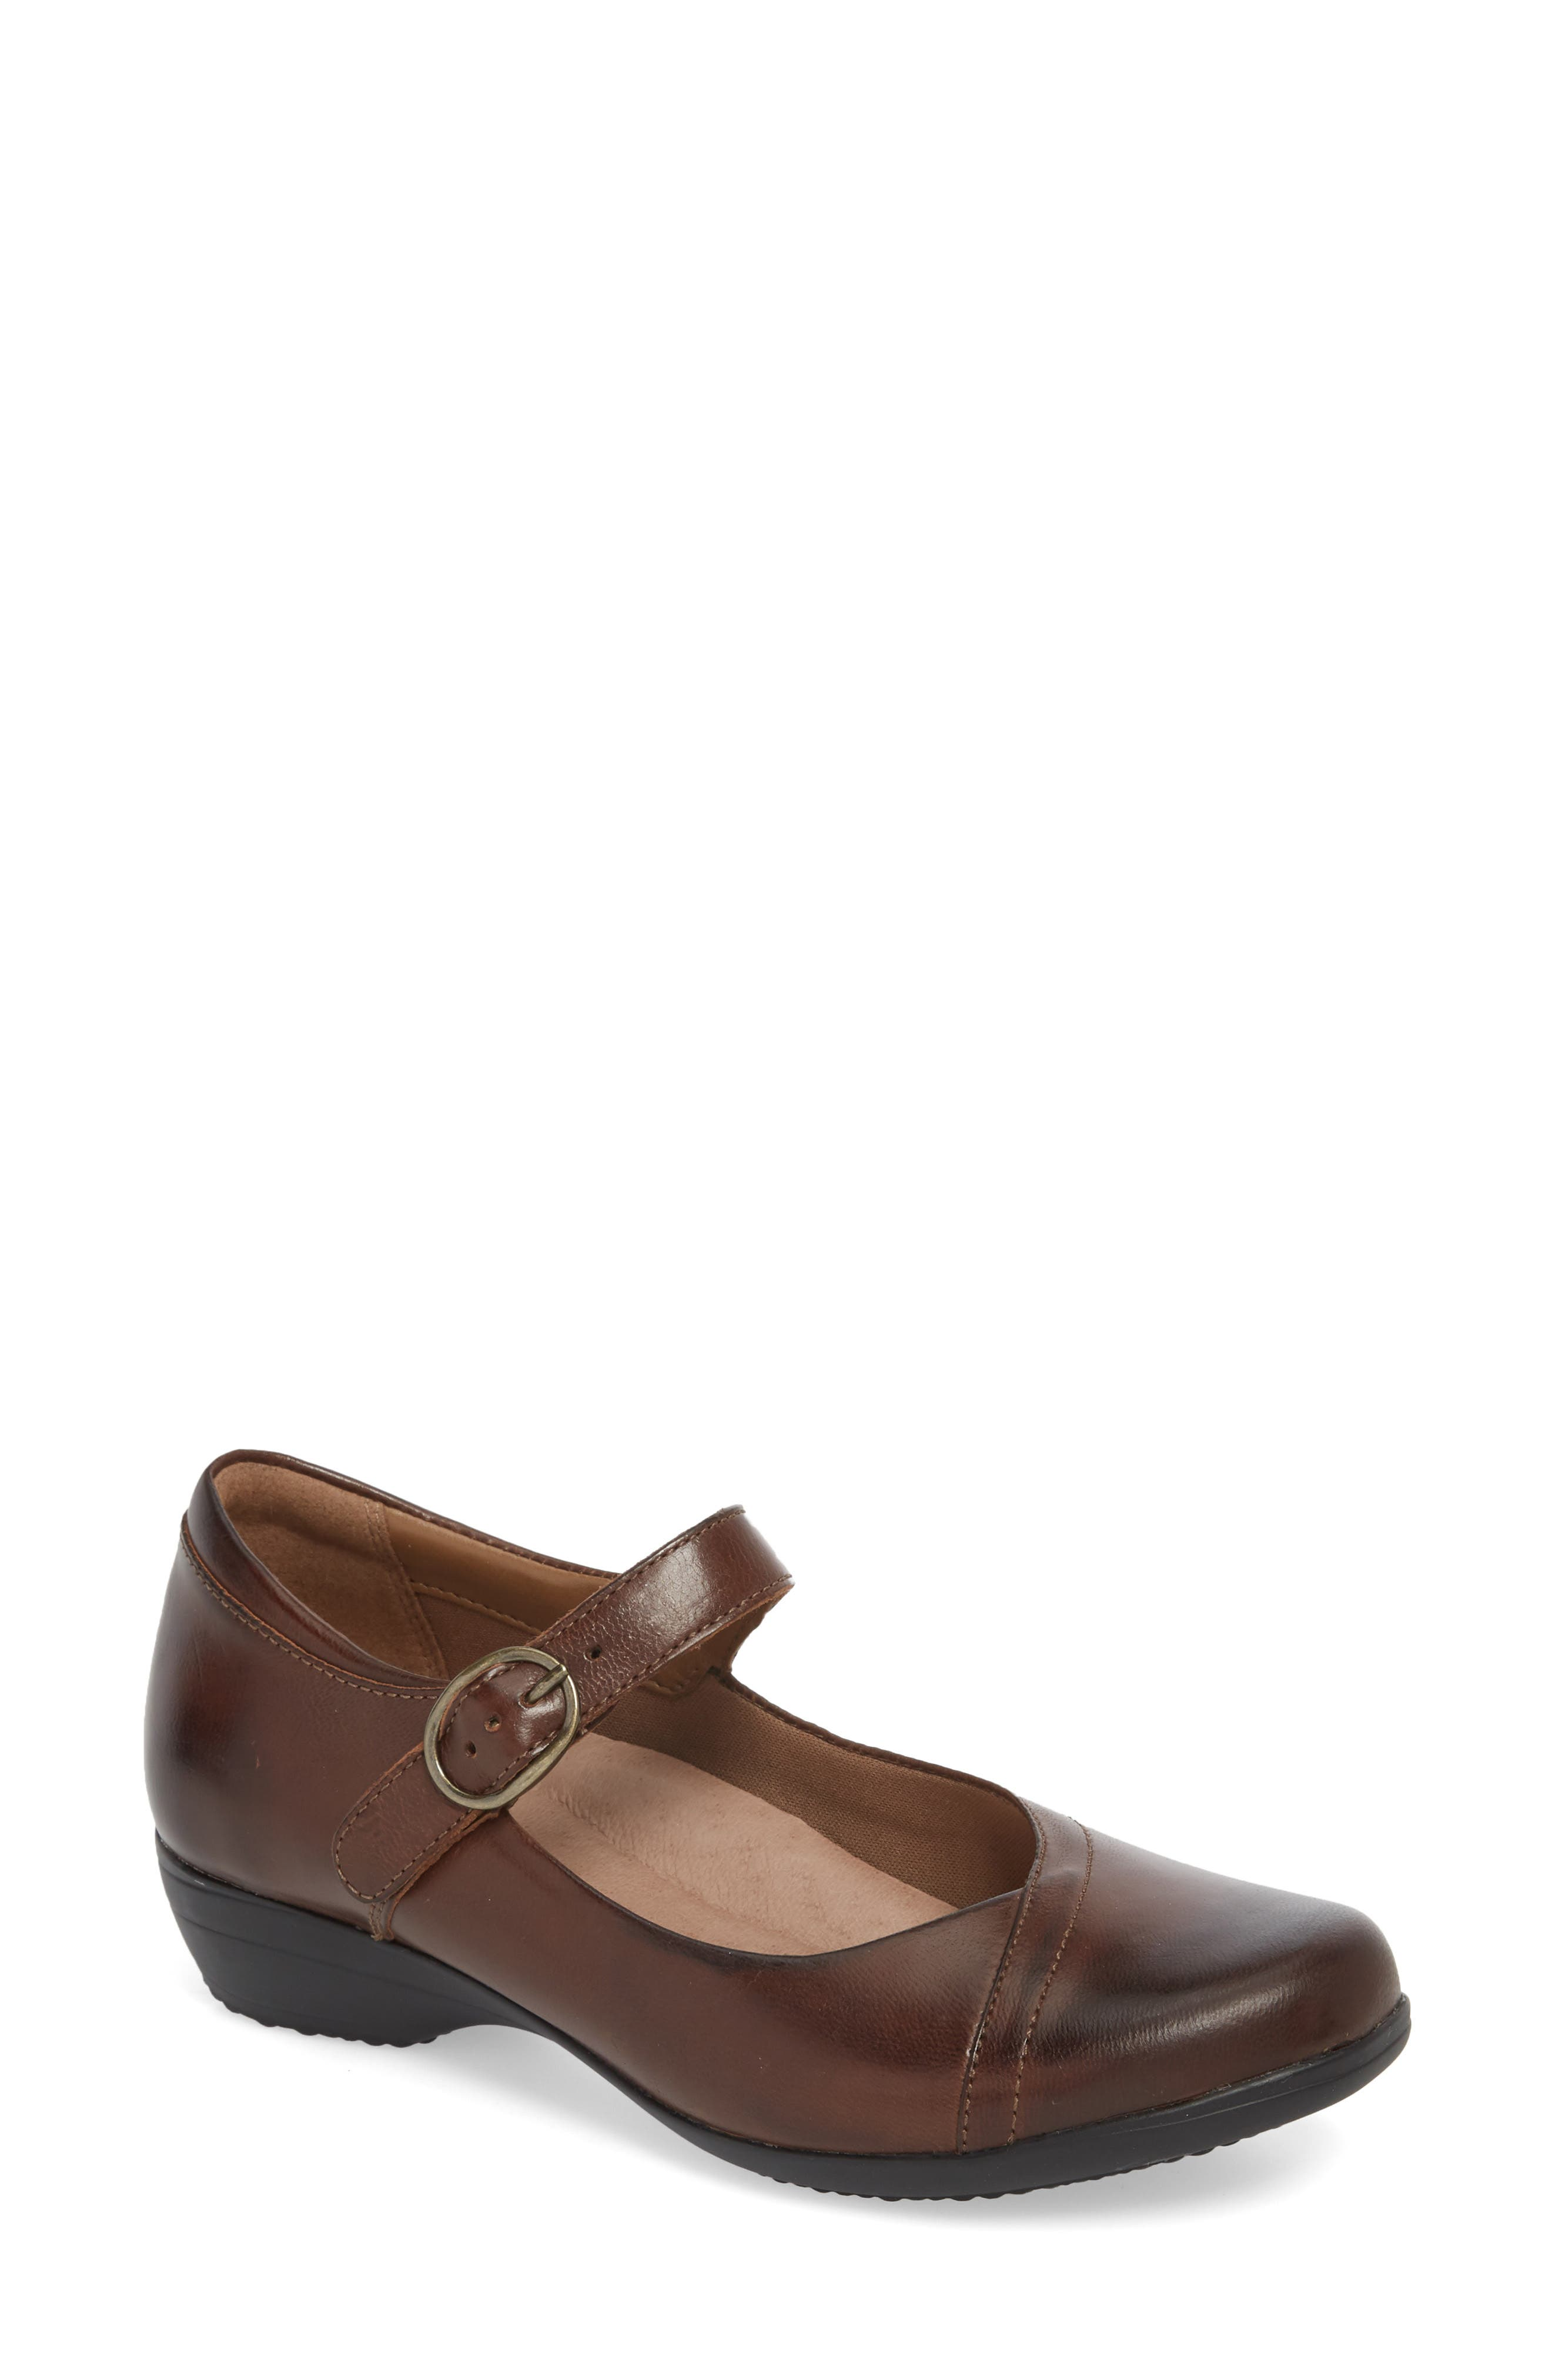 Dansko Fawna Mary Jane Flat-6- Brown